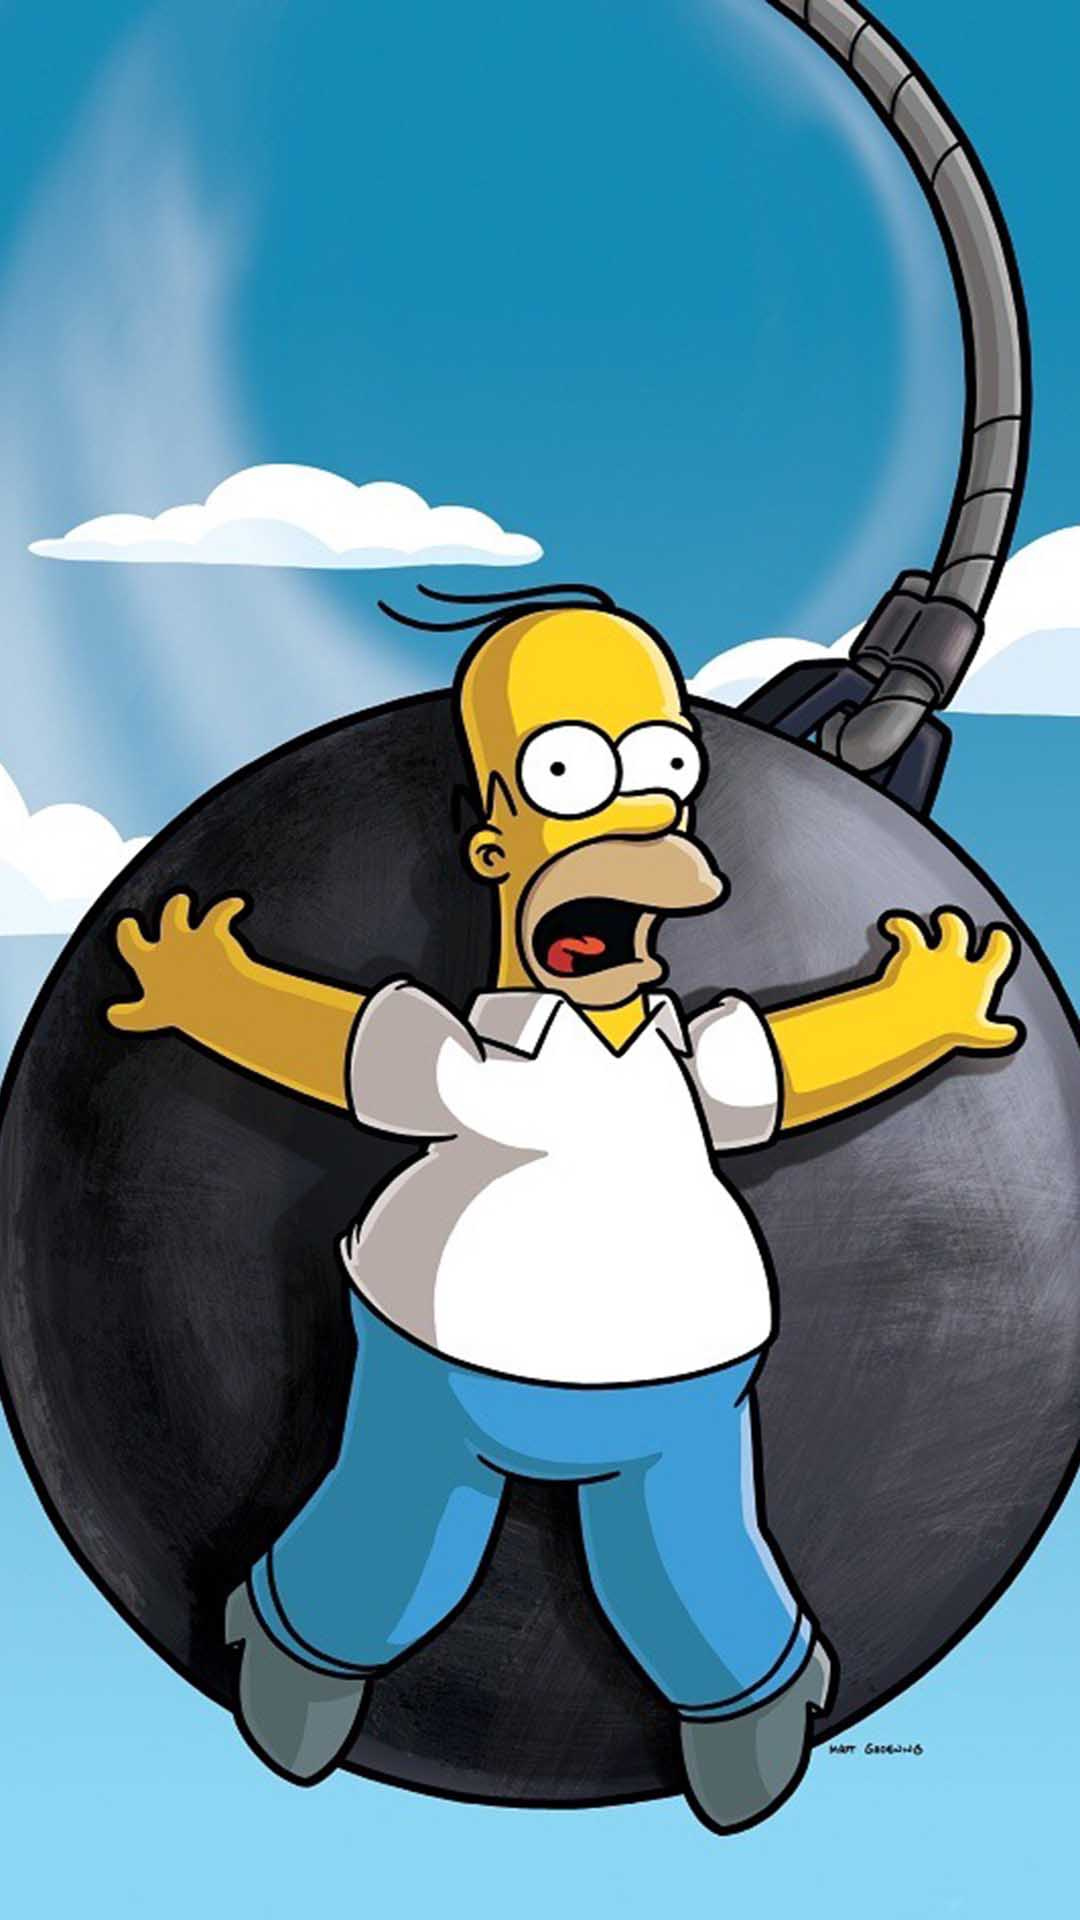 iPhone wallpaper homer simpson movie Les 3Wallpapers iPhone du jour (13/04/2018)